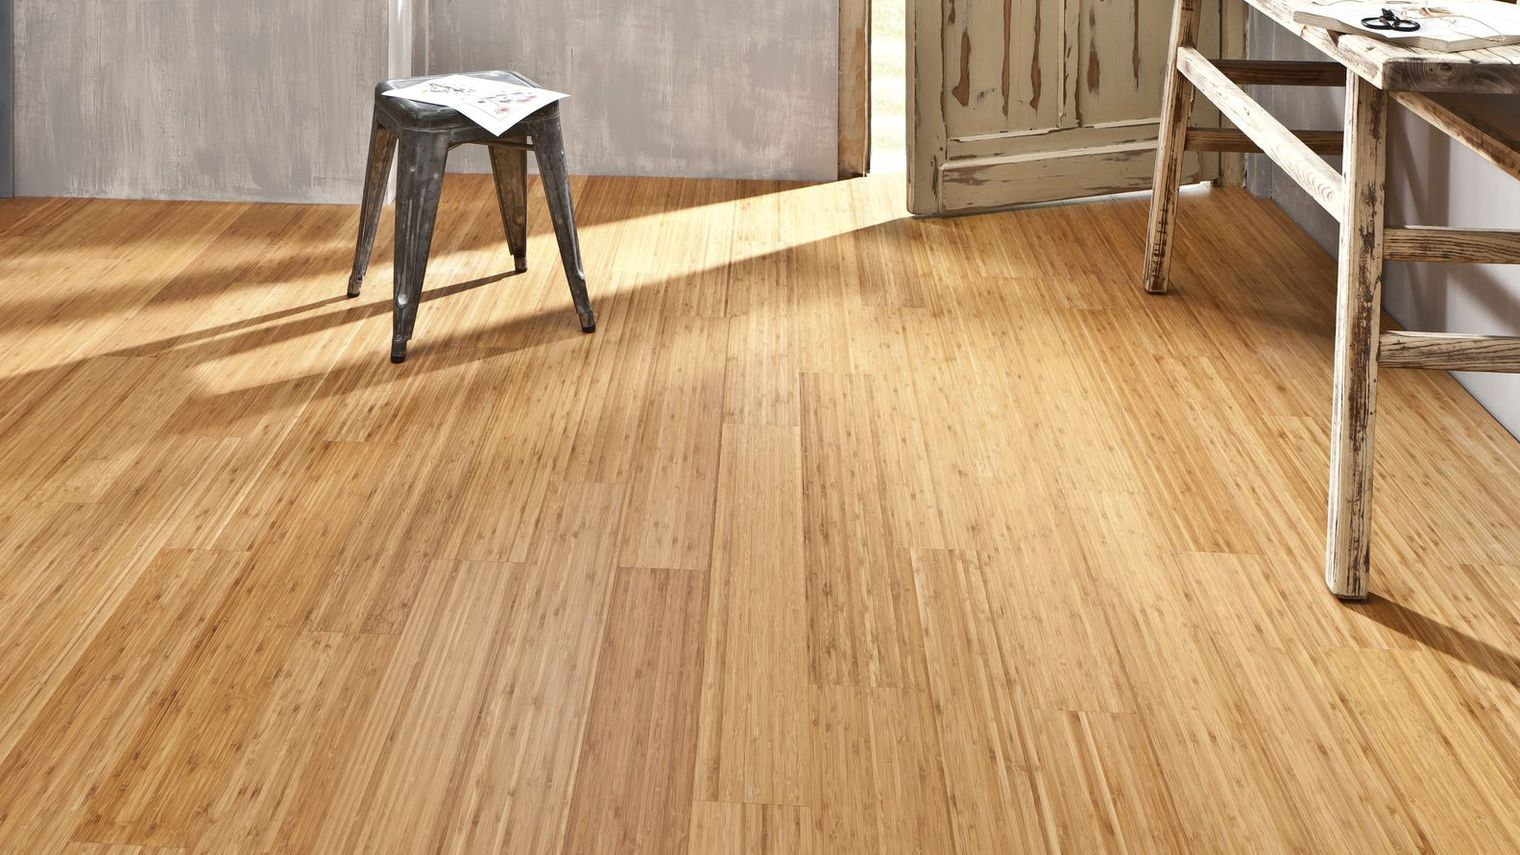 Parquet pour salon best parquet salon ideas on pinterest parquet carrelage sol pour tapis de - Comment choisir son parquet flottant ...